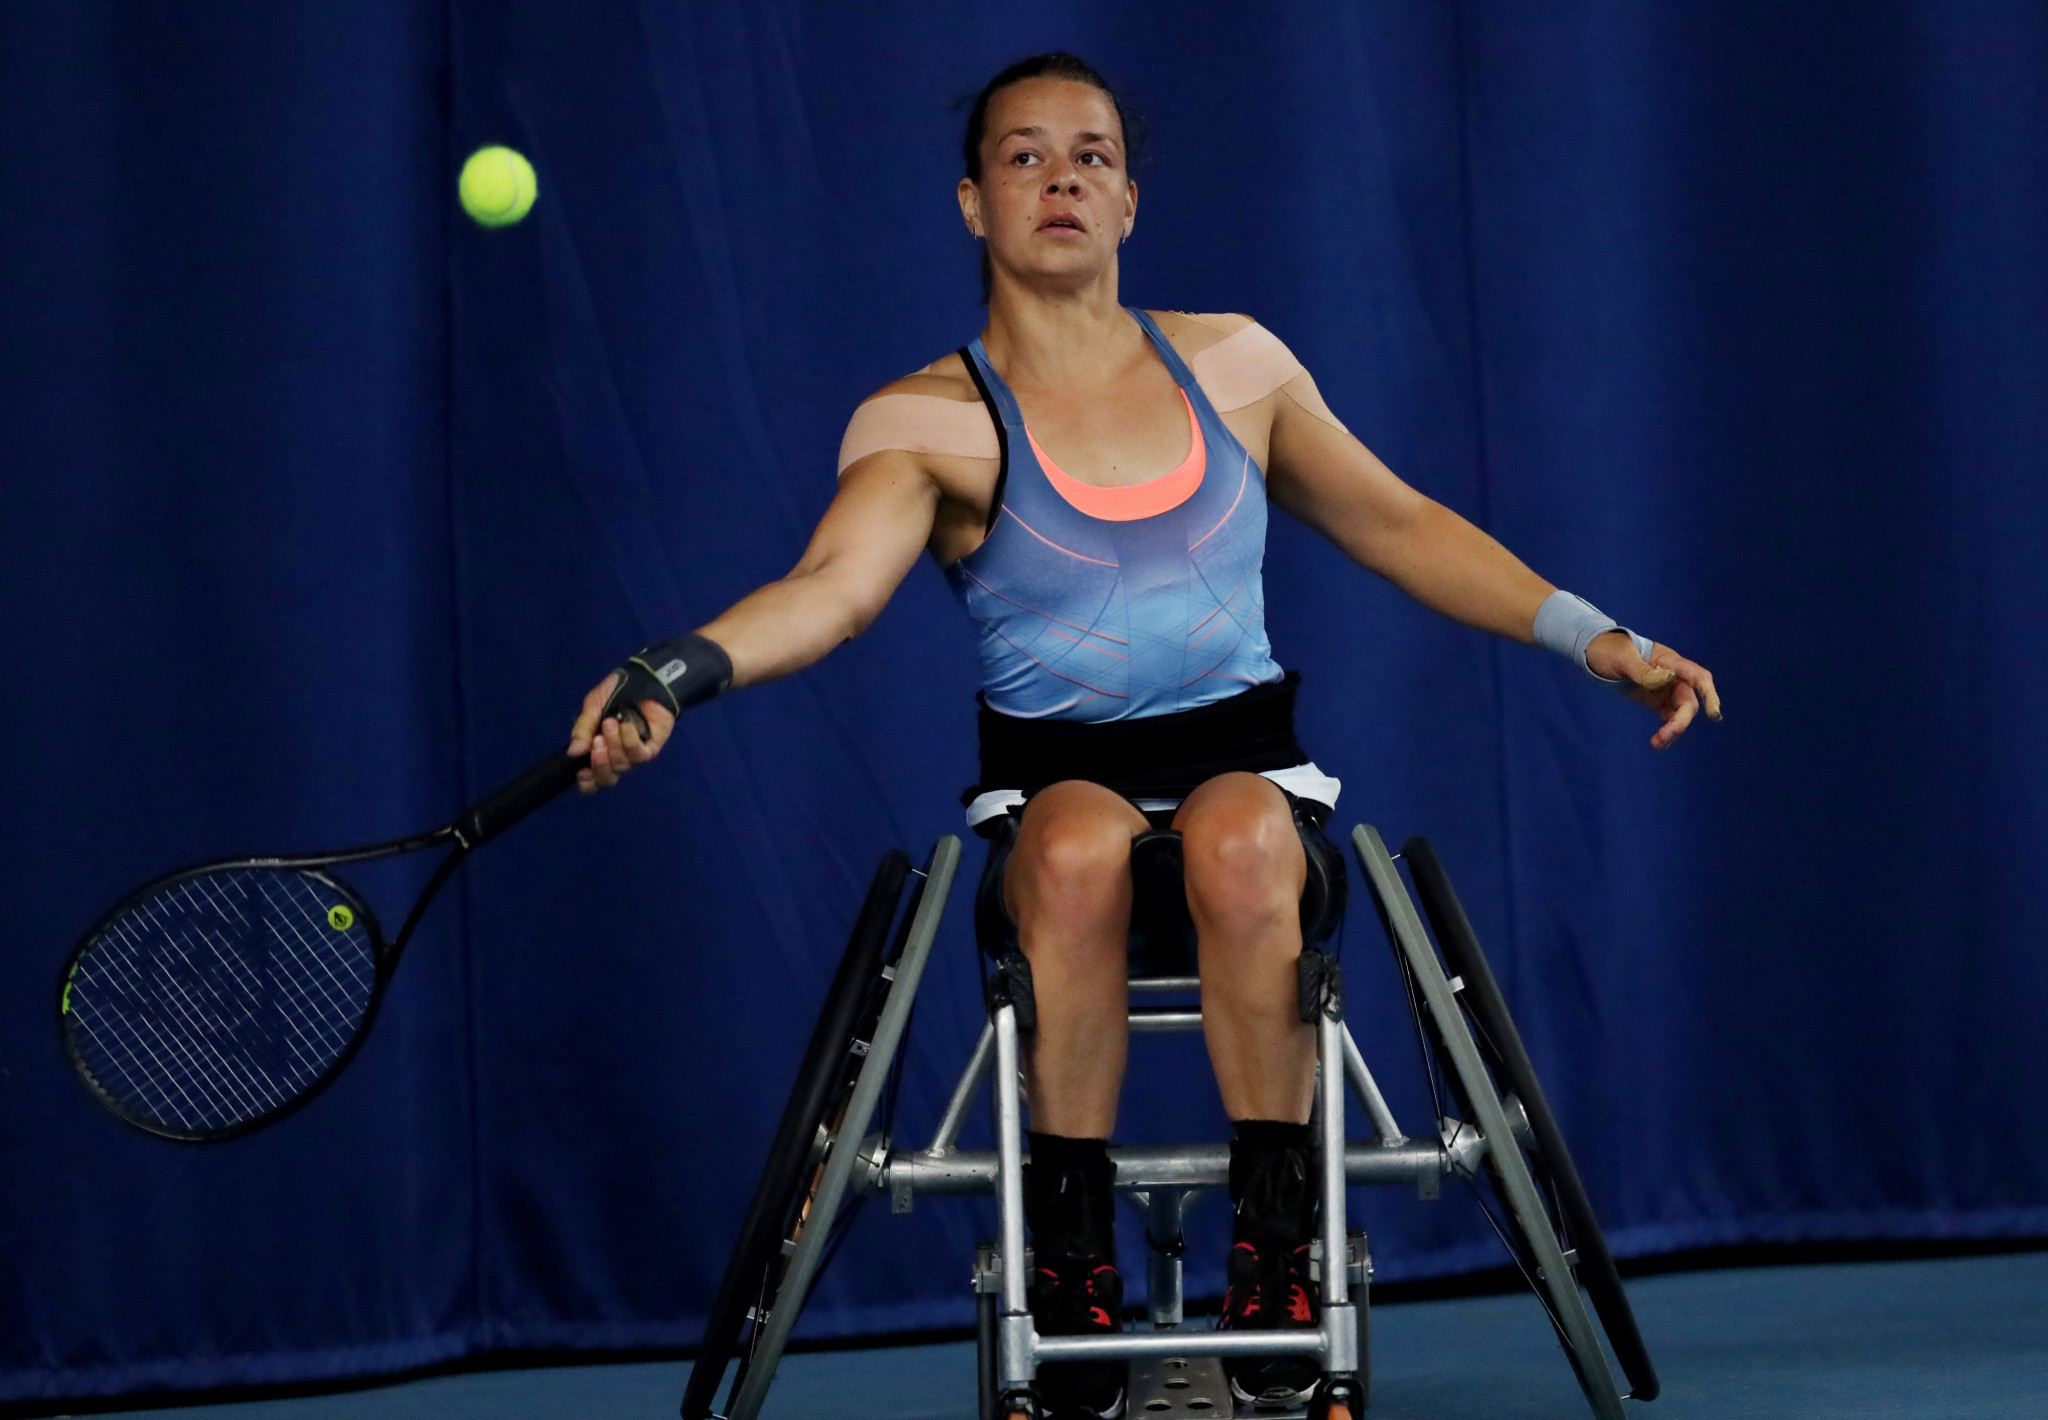 Top seed Marjolein Buis from the Netherlands won 6-0, 6-2 against fourth seed Japanese Manami Tanaka at the International Tennis Federation Belgian Wheelchair Tennis Open final ©Getty Images